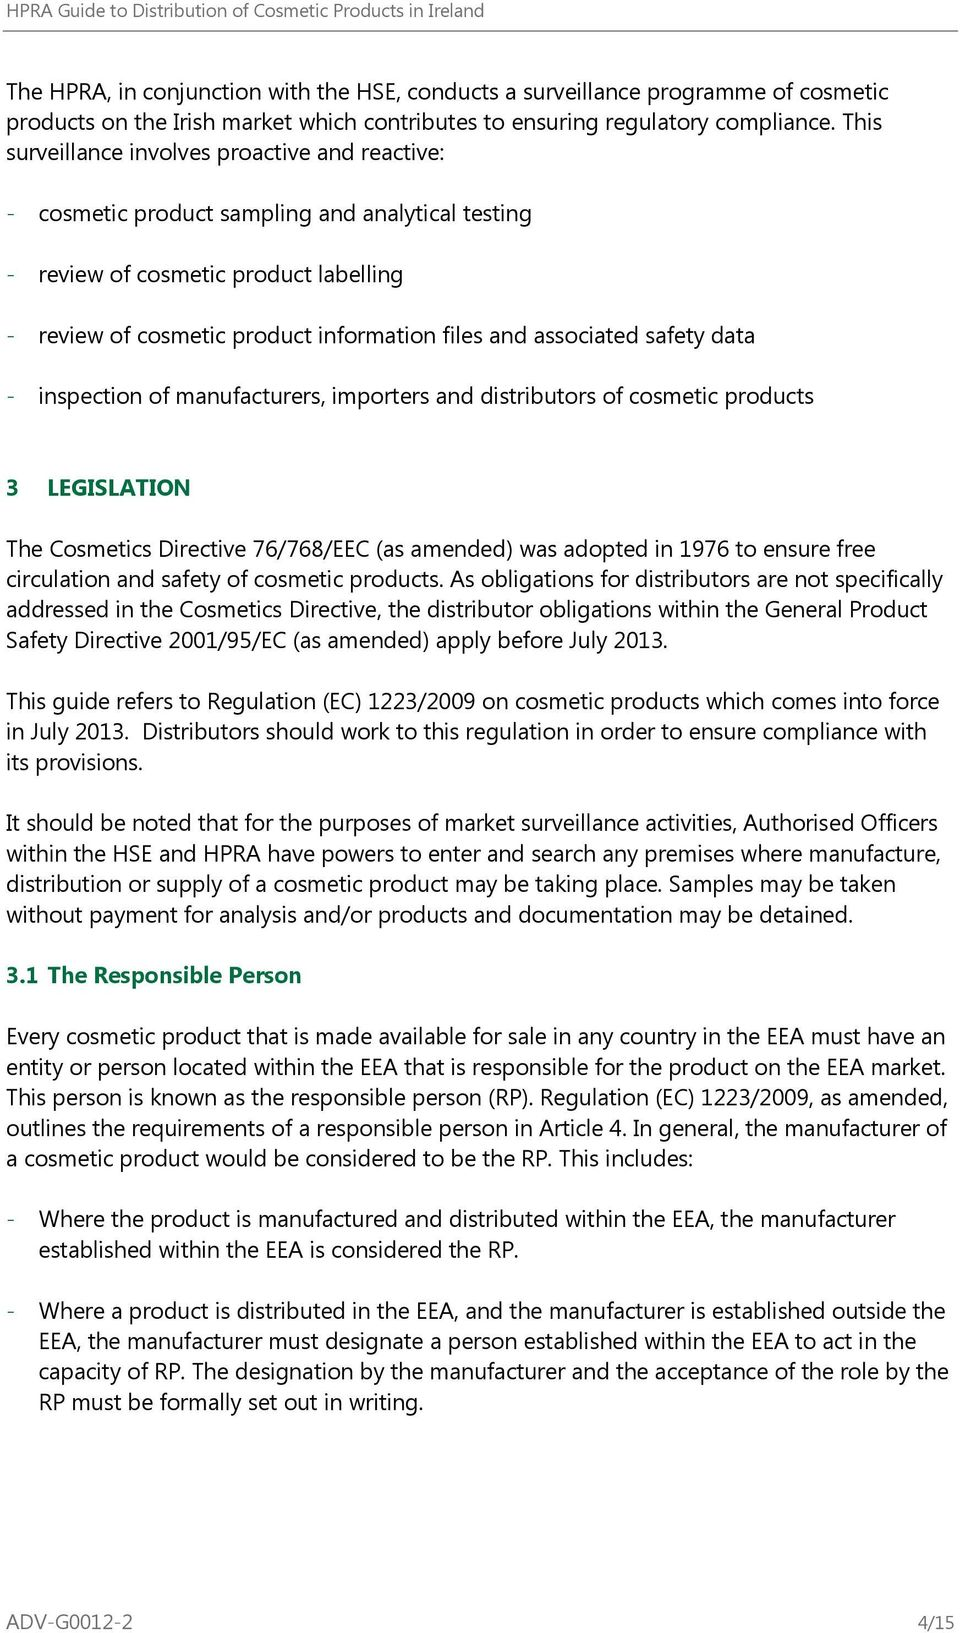 associated safety data - inspection of manufacturers, importers and distributors of cosmetic products 3 LEGISLATION The Cosmetics Directive 76/768/EEC (as amended) was adopted in 1976 to ensure free